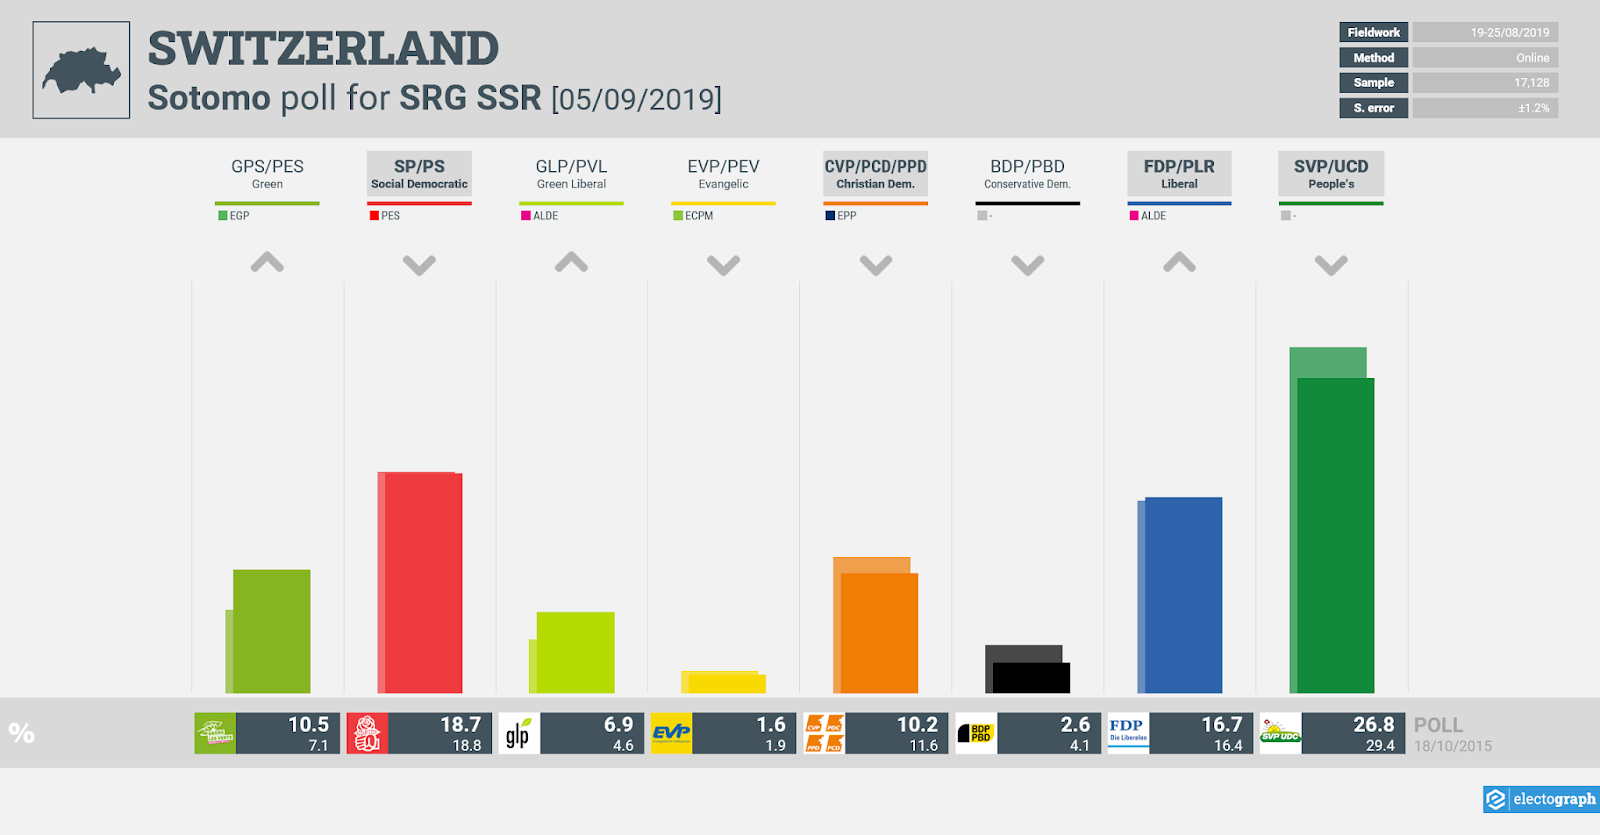 SWITZERLAND: Sotomo poll chart for SRG SSR, 5 September 2019